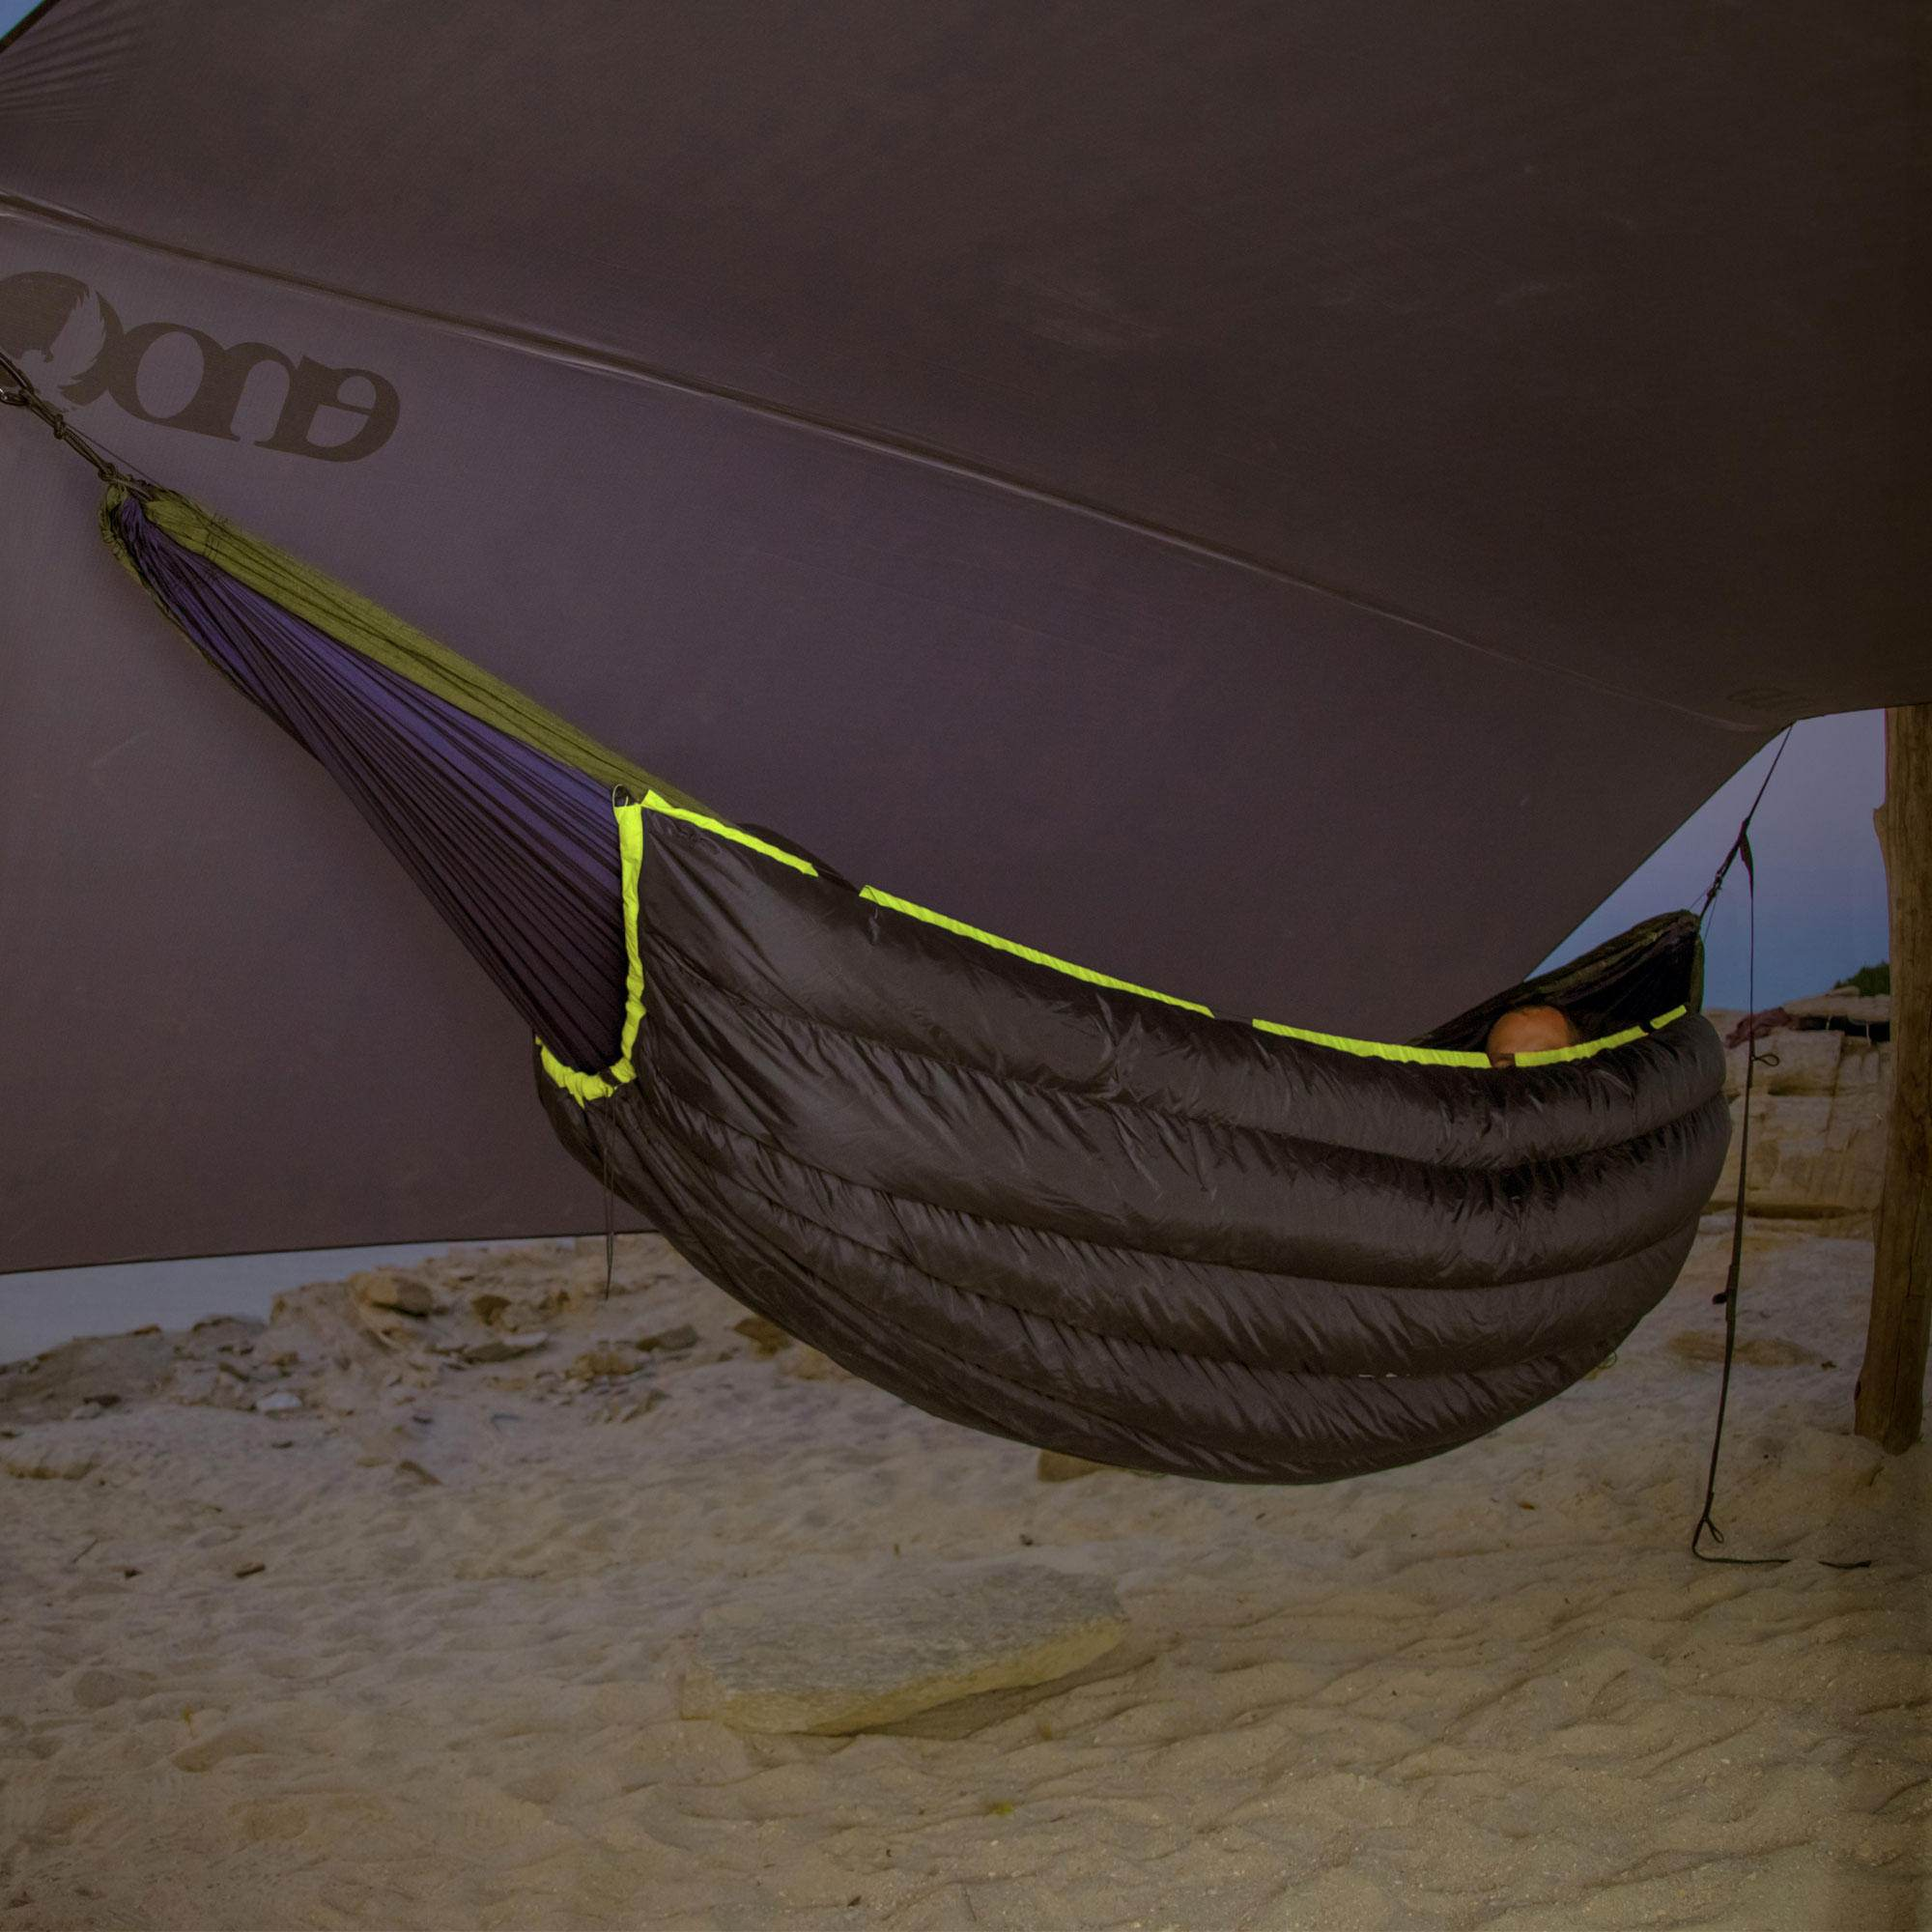 rei eagles by in hammock single singlenest doublenest camping com navy nest nicolasprudhon yellow double and